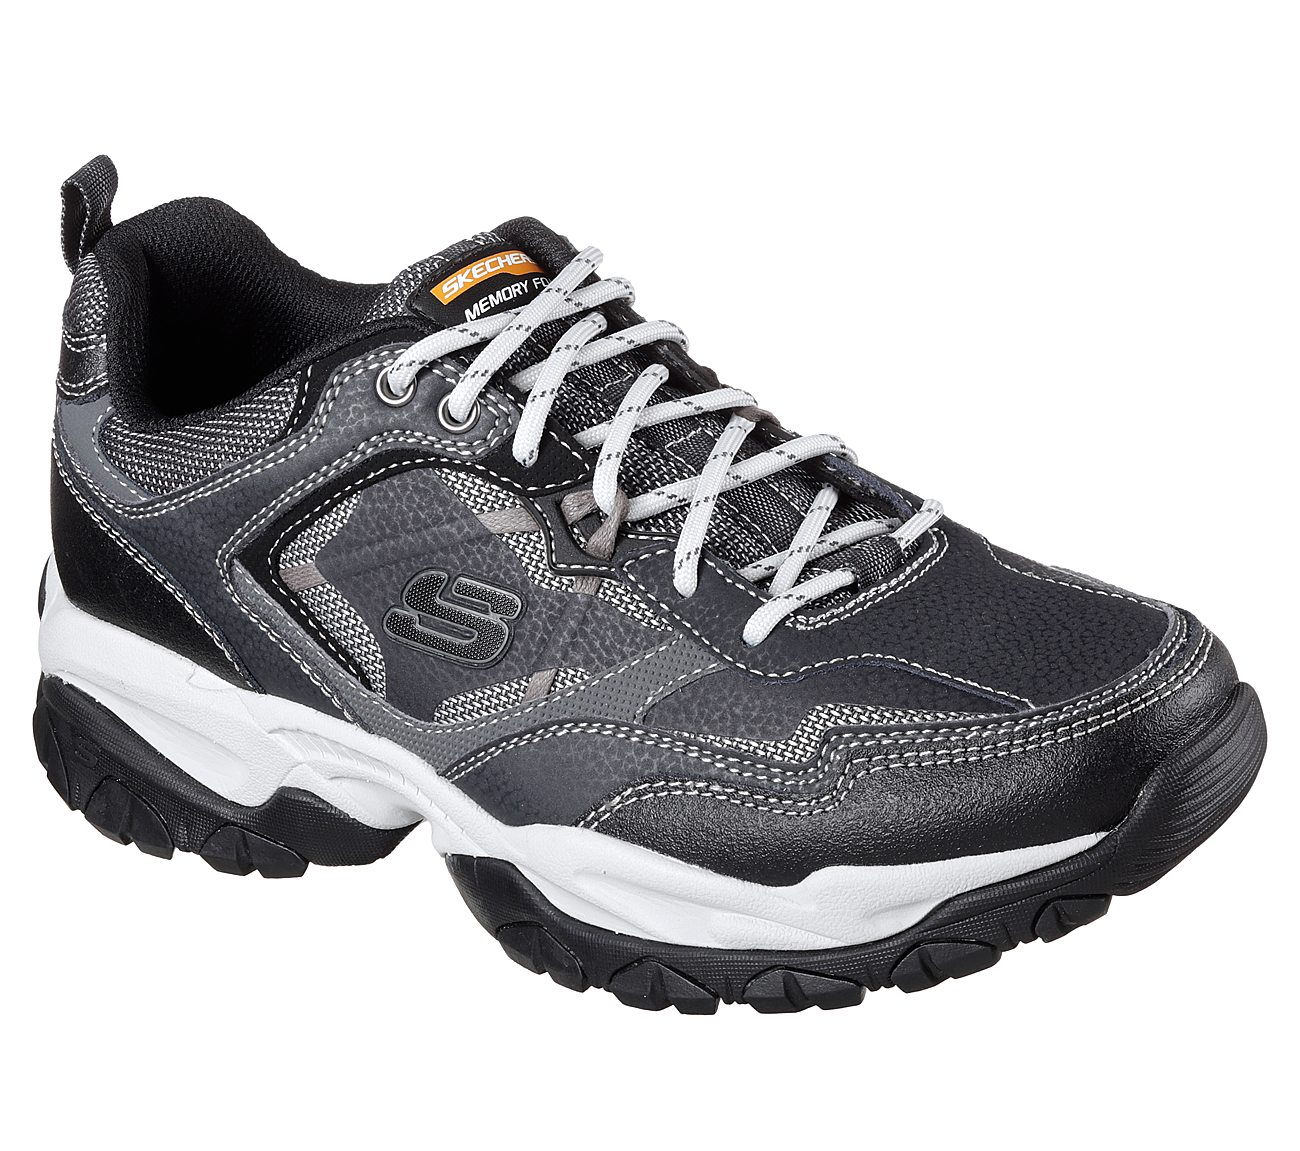 SKECHERS Sparta 2.0 TR Training Shoes Shoes